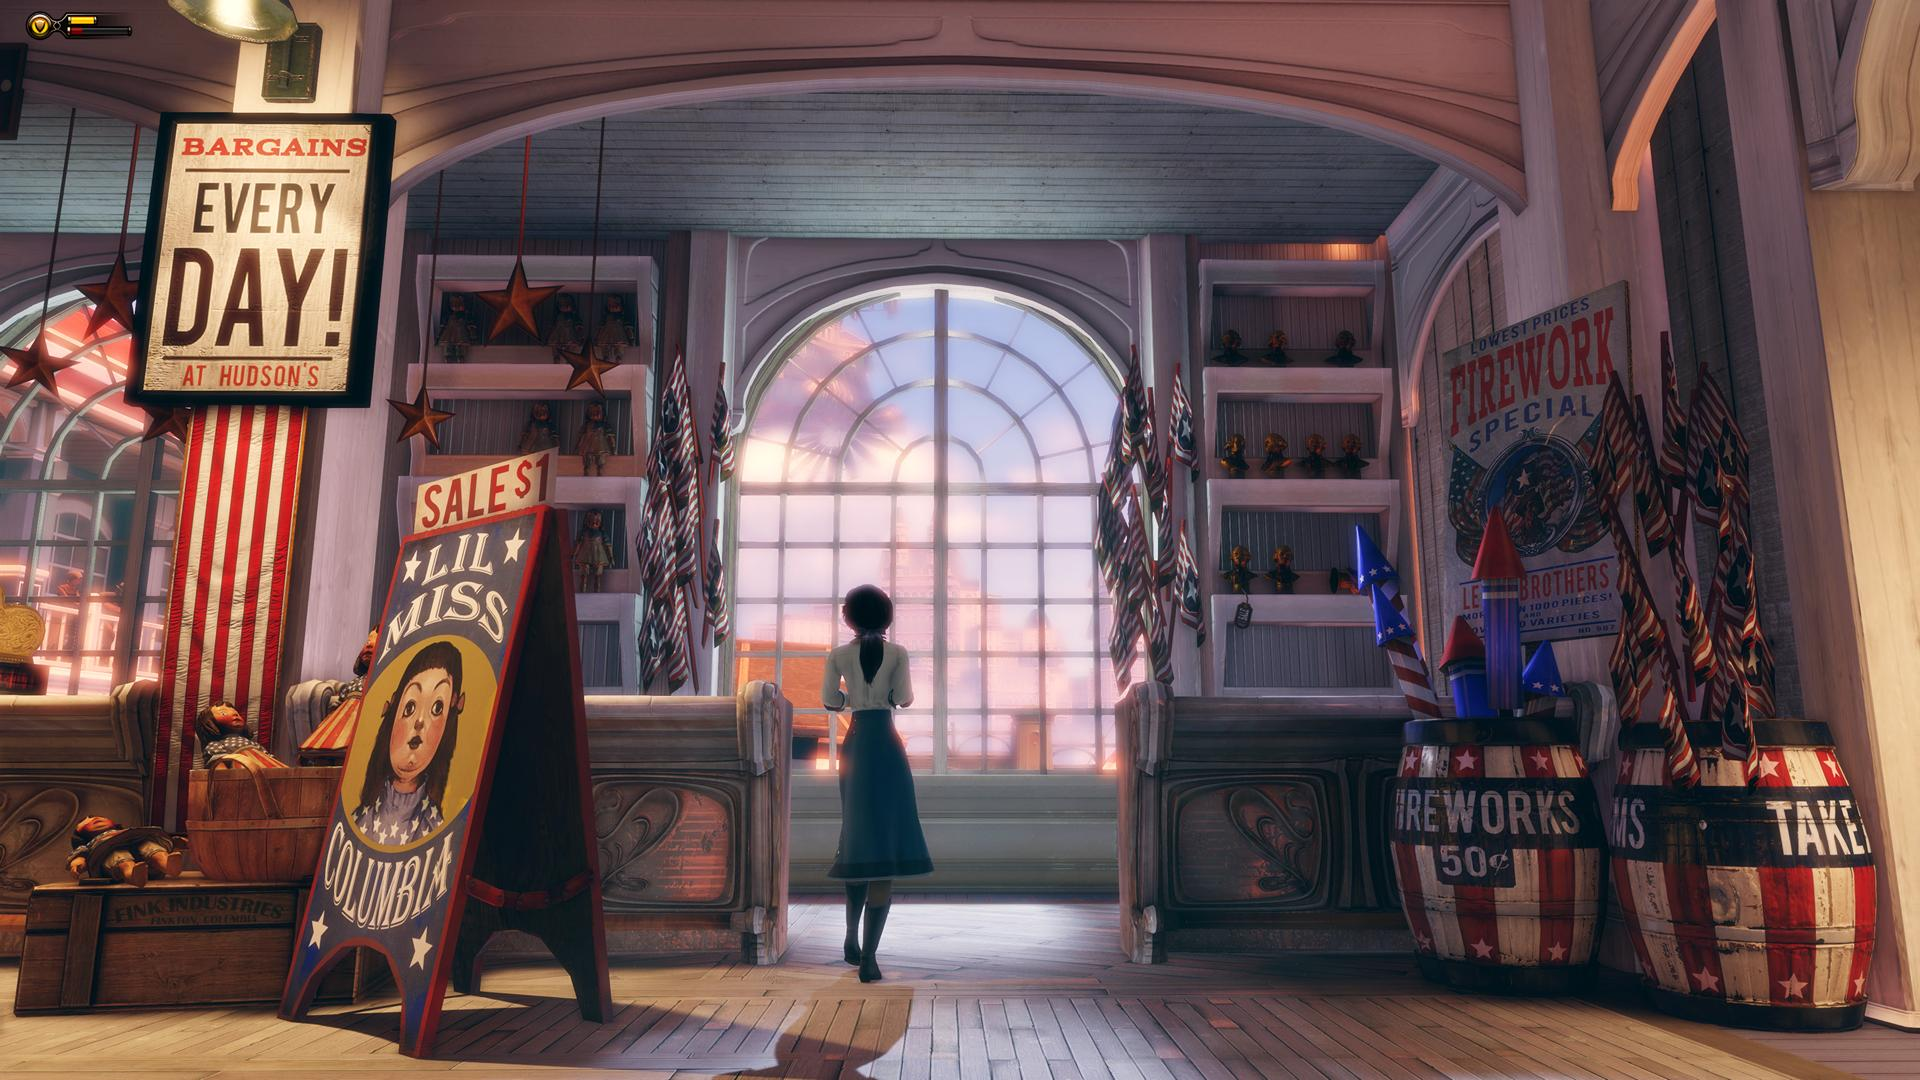 BioShock Infinite: Burial at Sea – Episode 1 set to be released mid-November